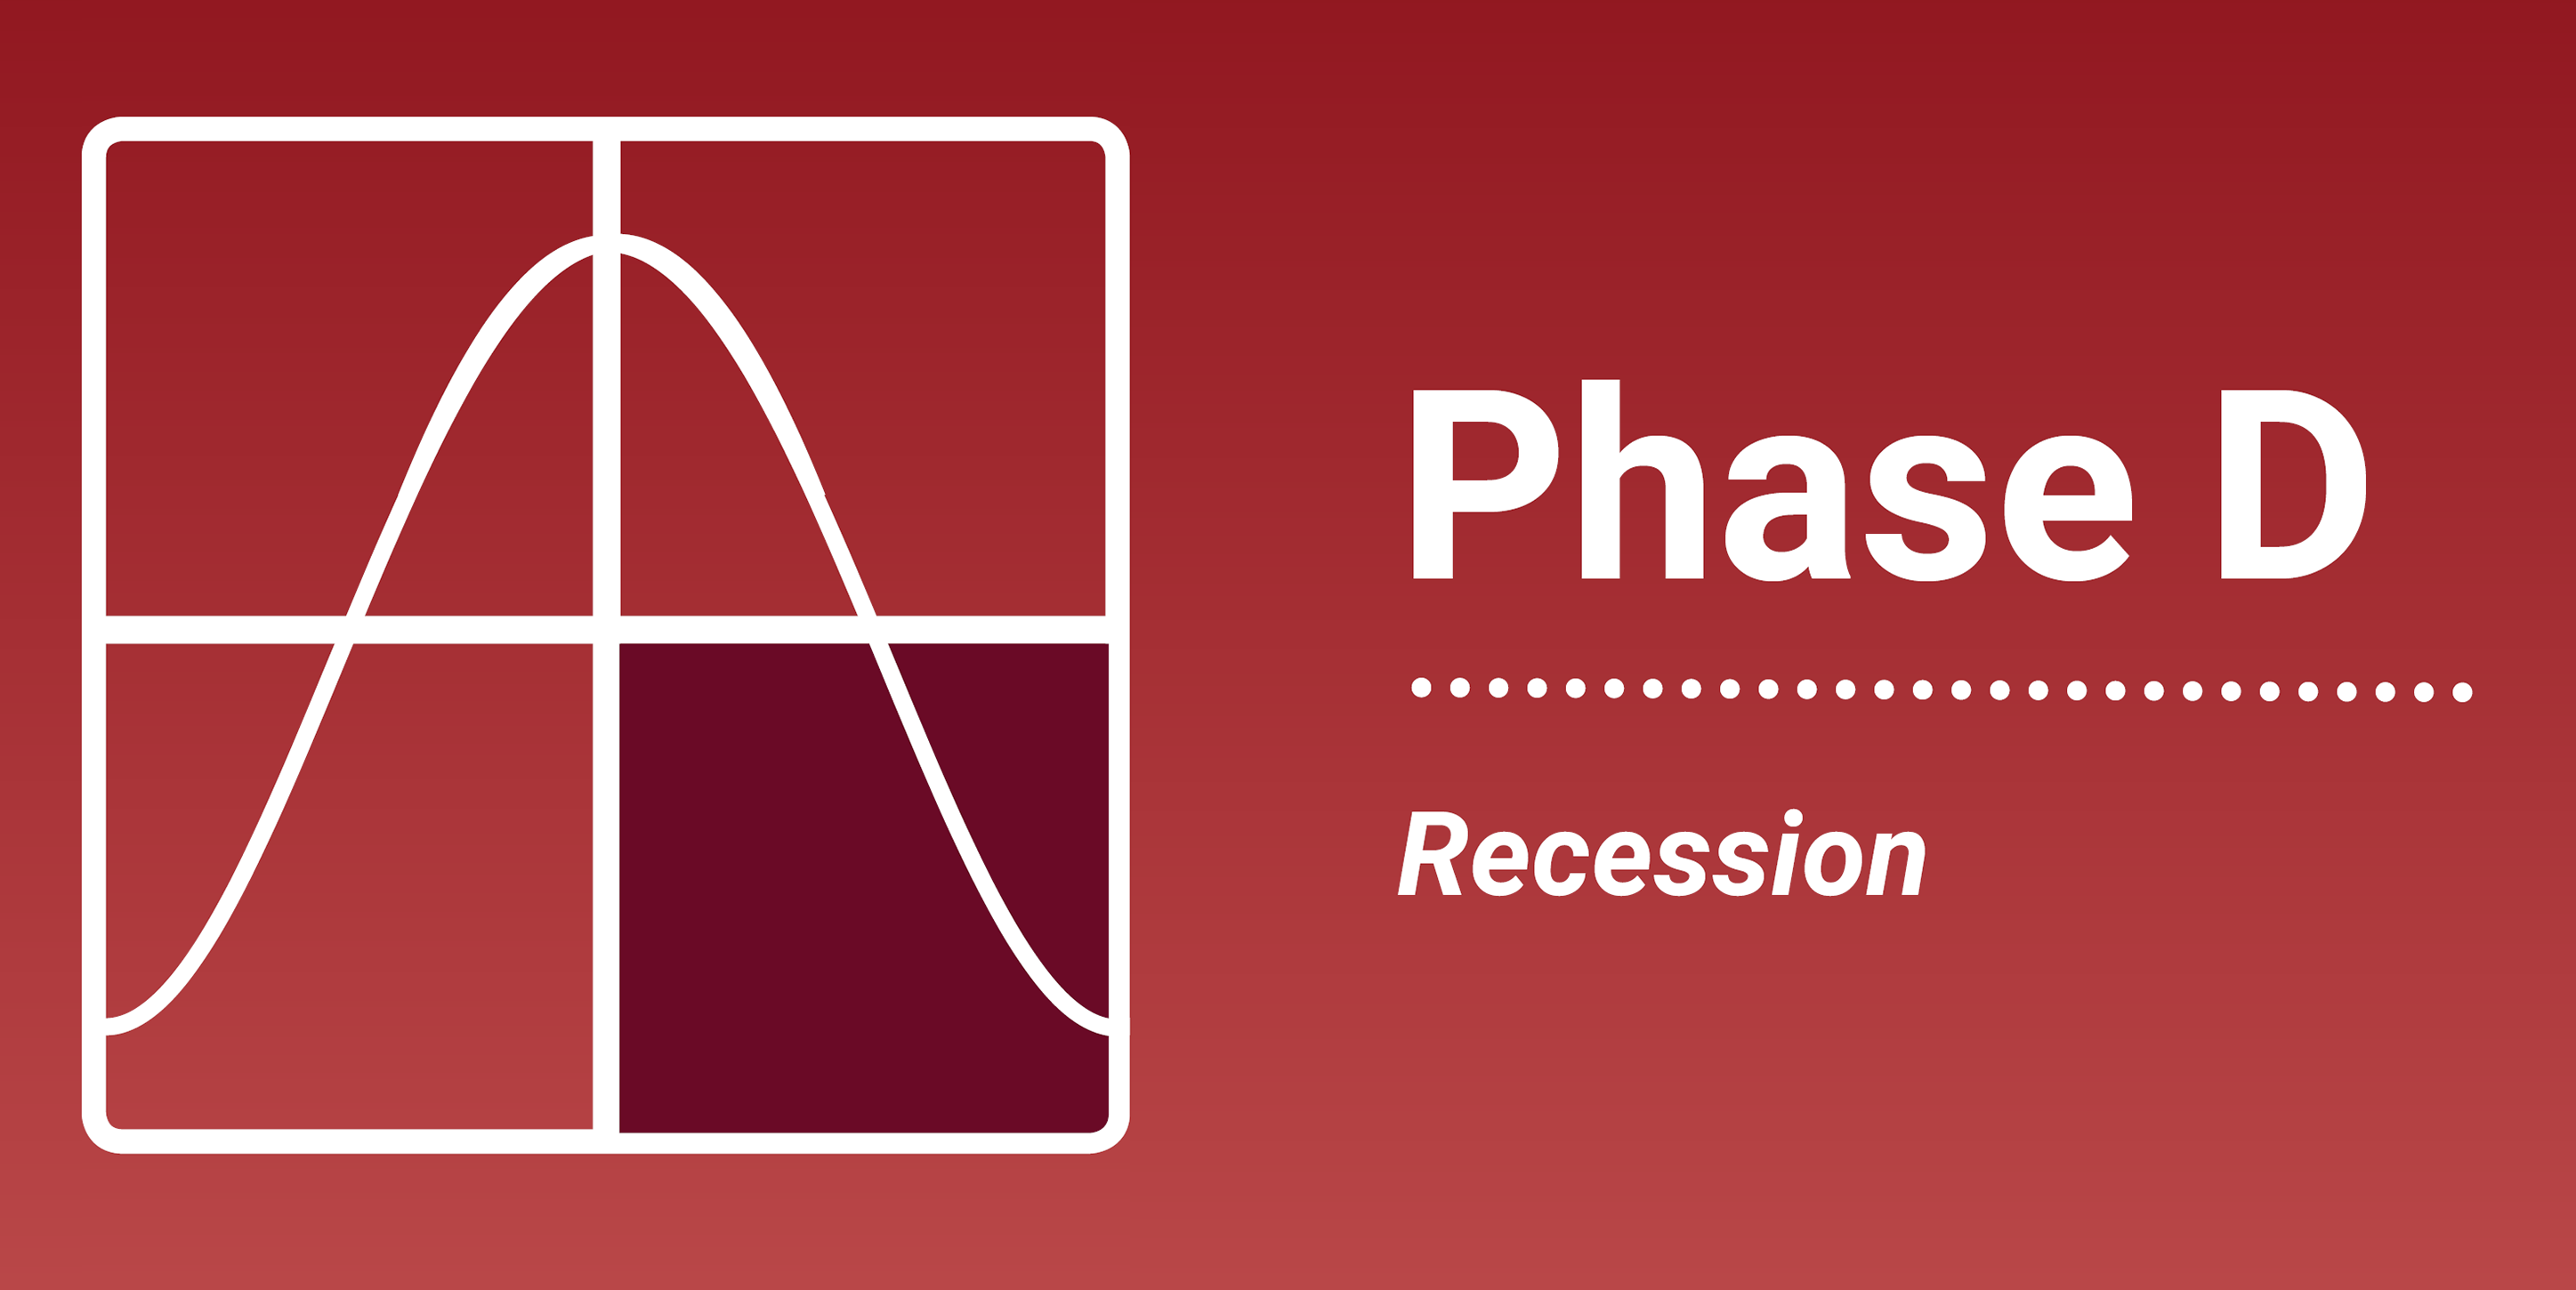 Phase D